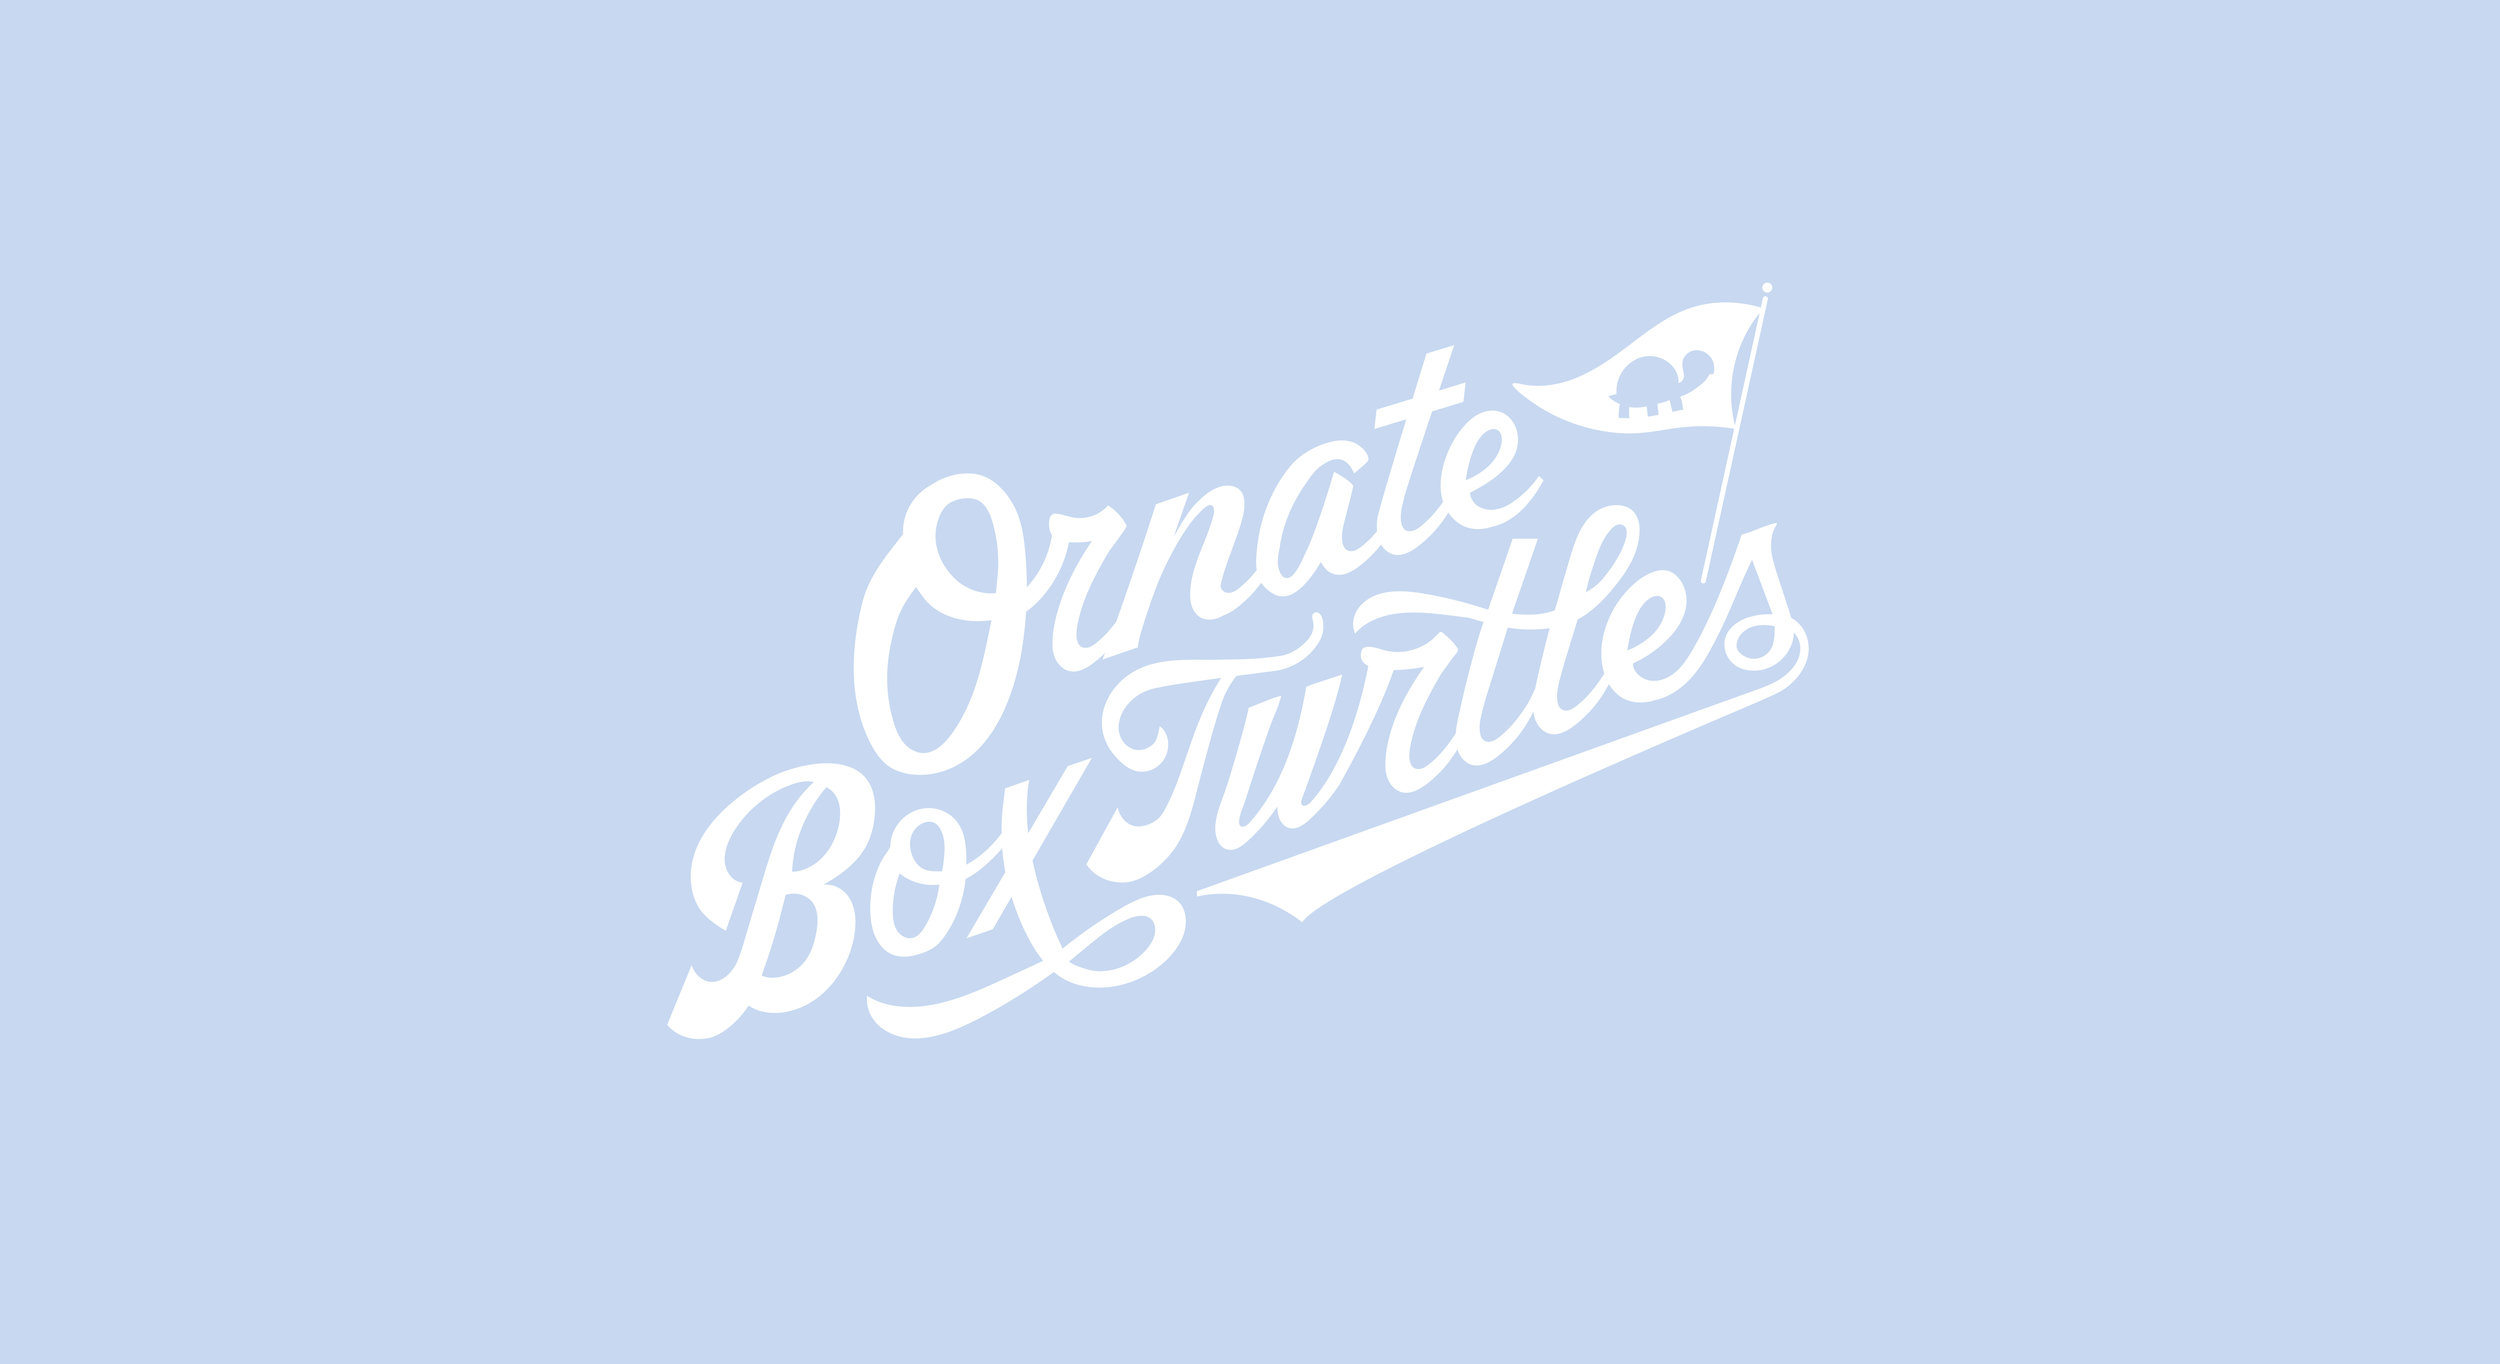 OBT_Turtles_Logo-01.jpg